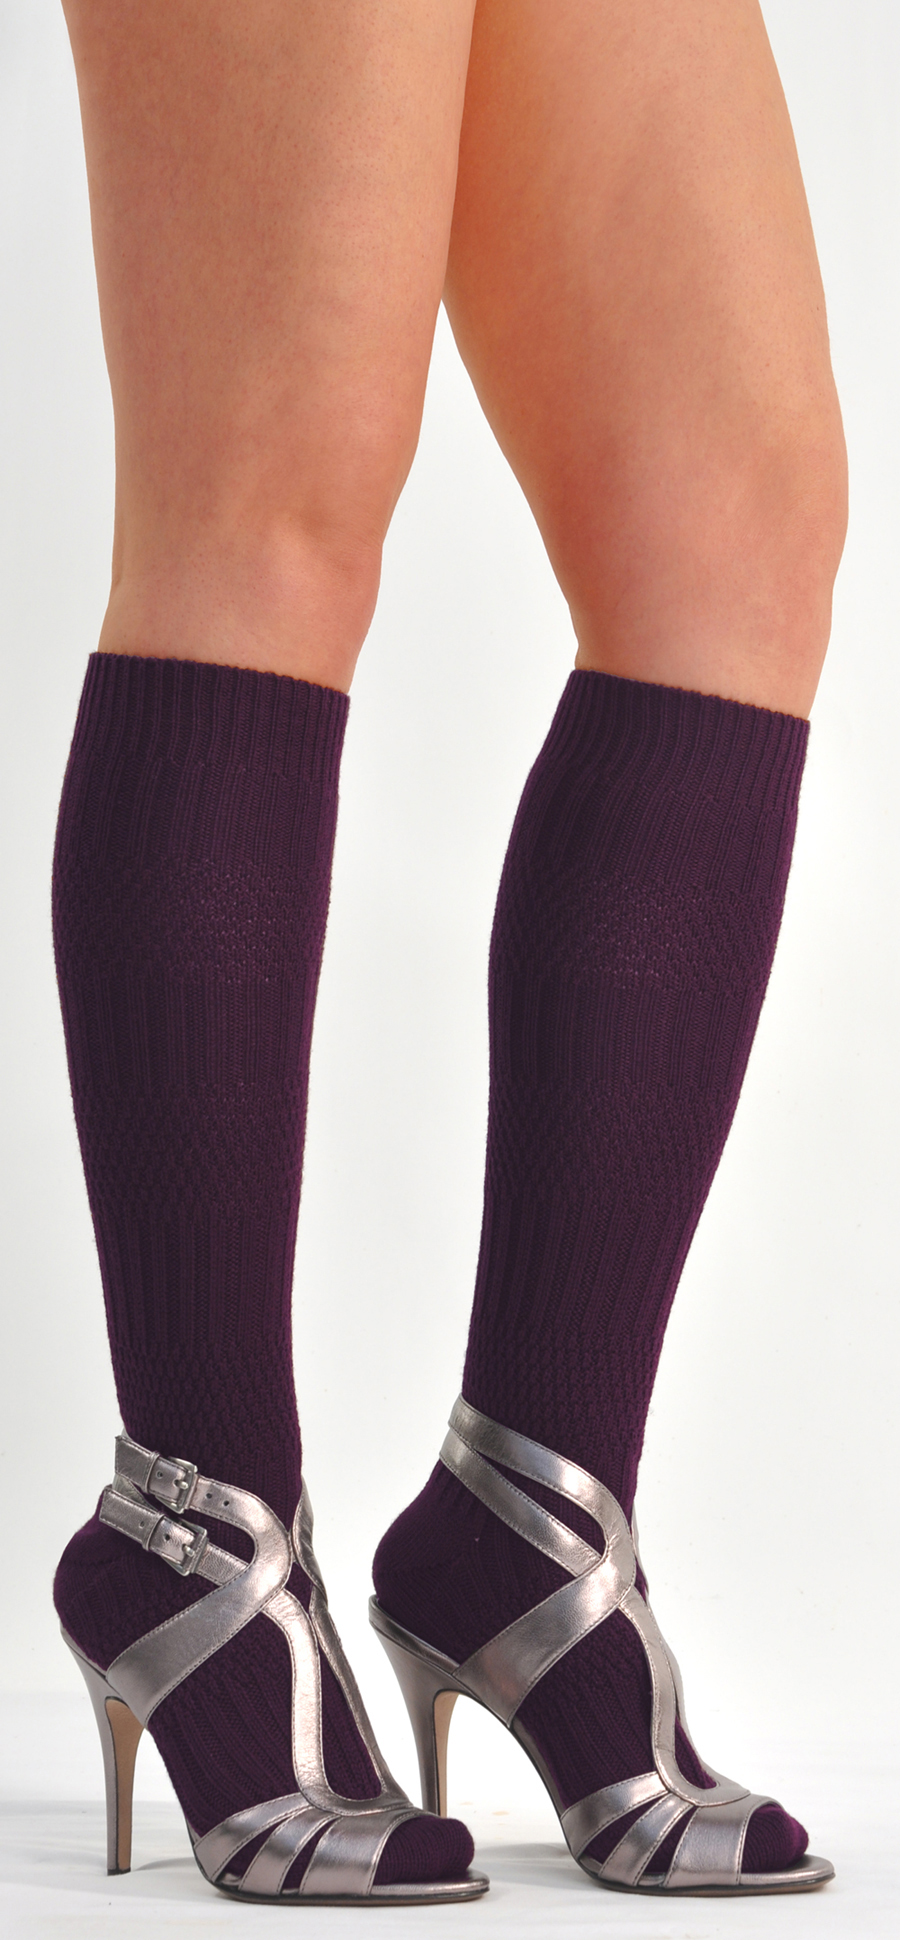 acad9ecbb Luxury Style Women s Knee-High Socks in Elegant and Fashionable Designs